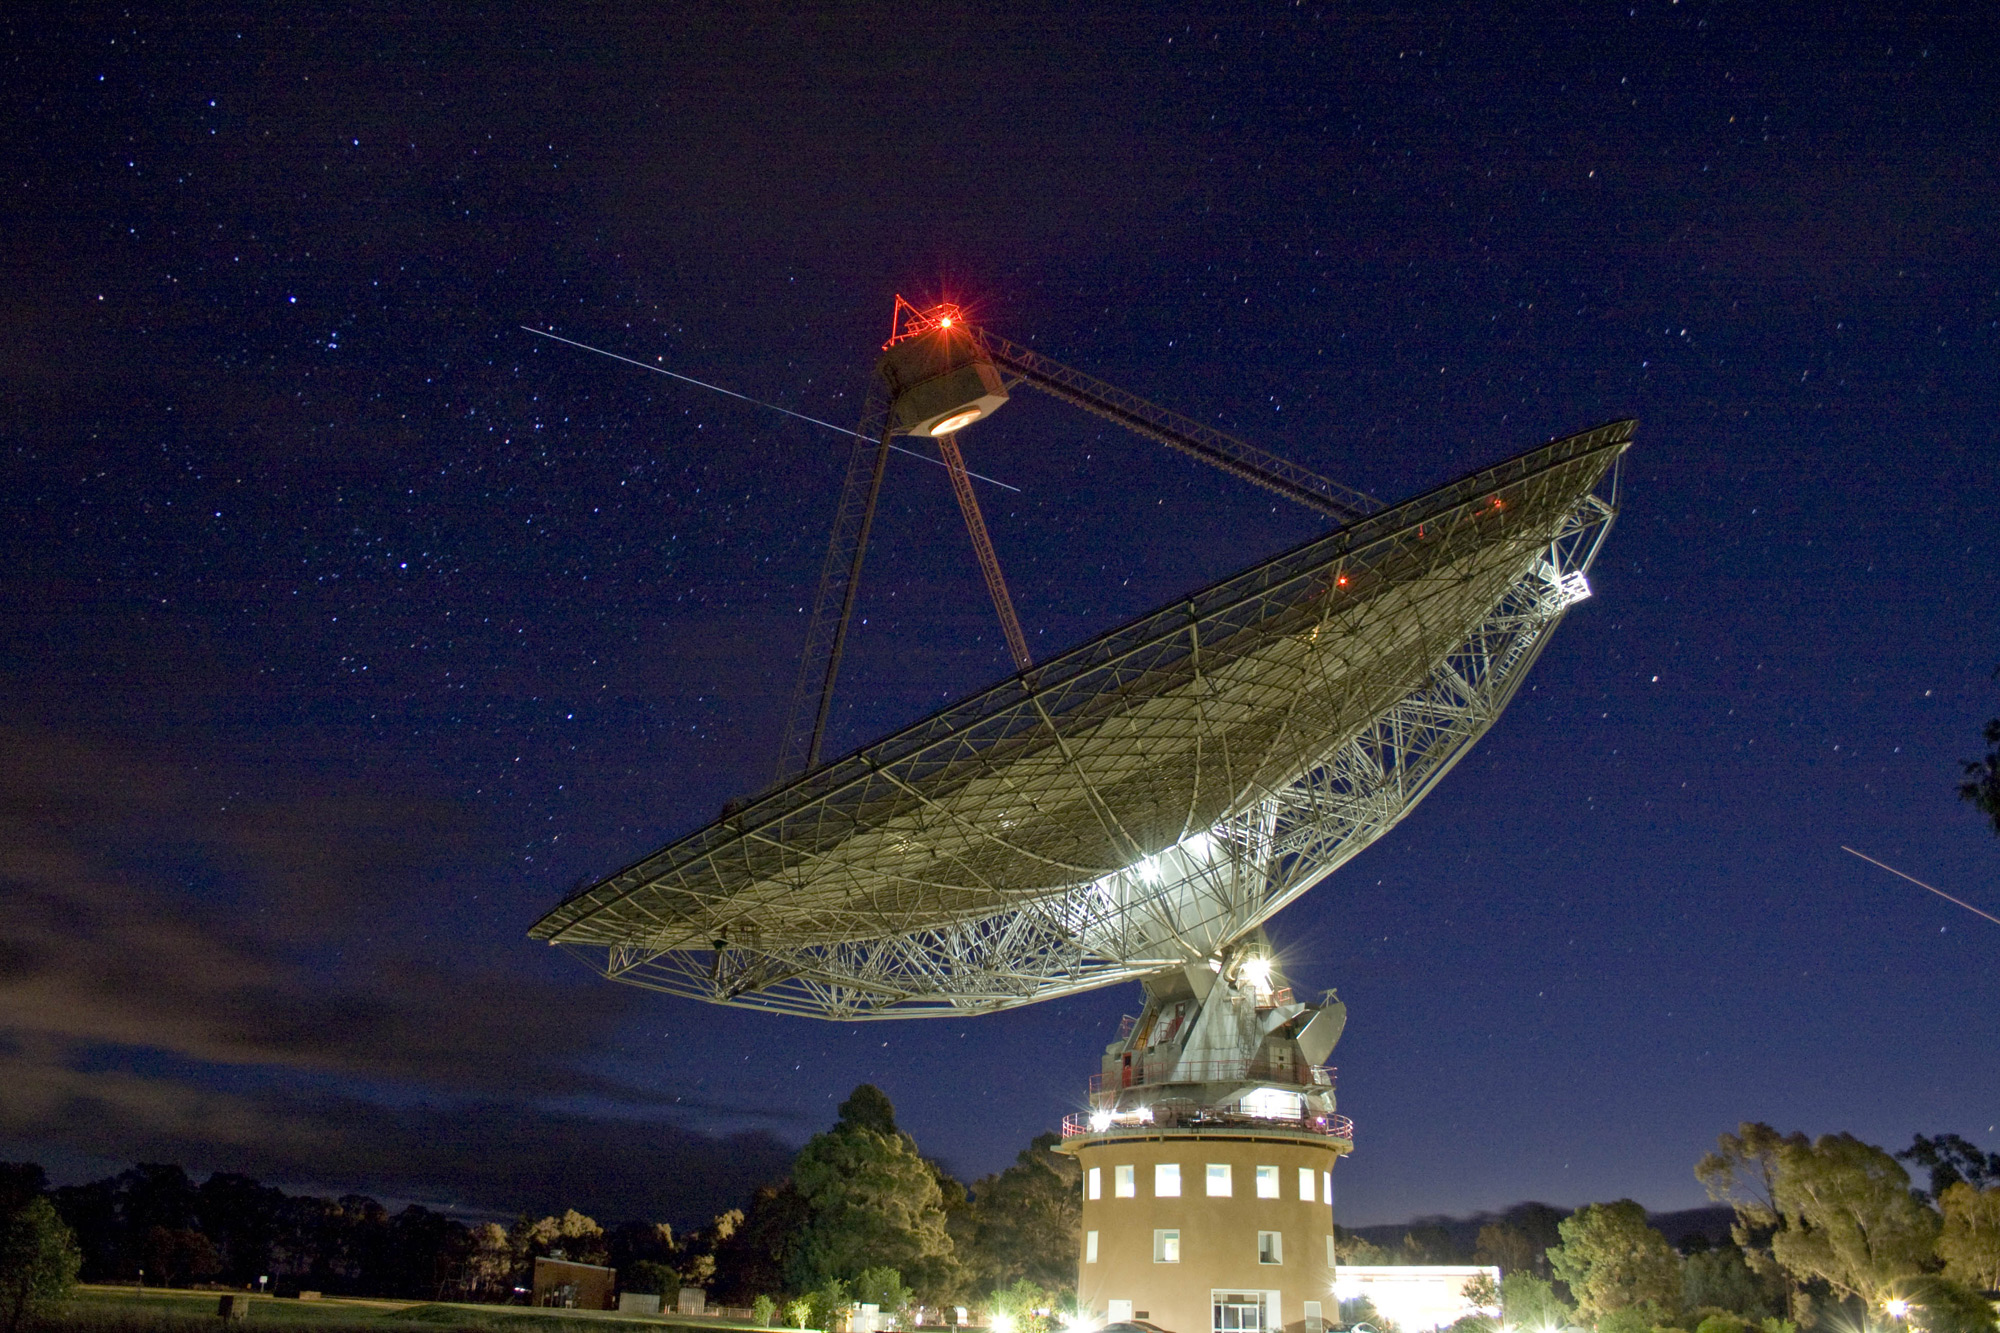 In a Land Down Under, Where Spacecraft Glow  In a Land Down Under, Where Spacecraft Glow